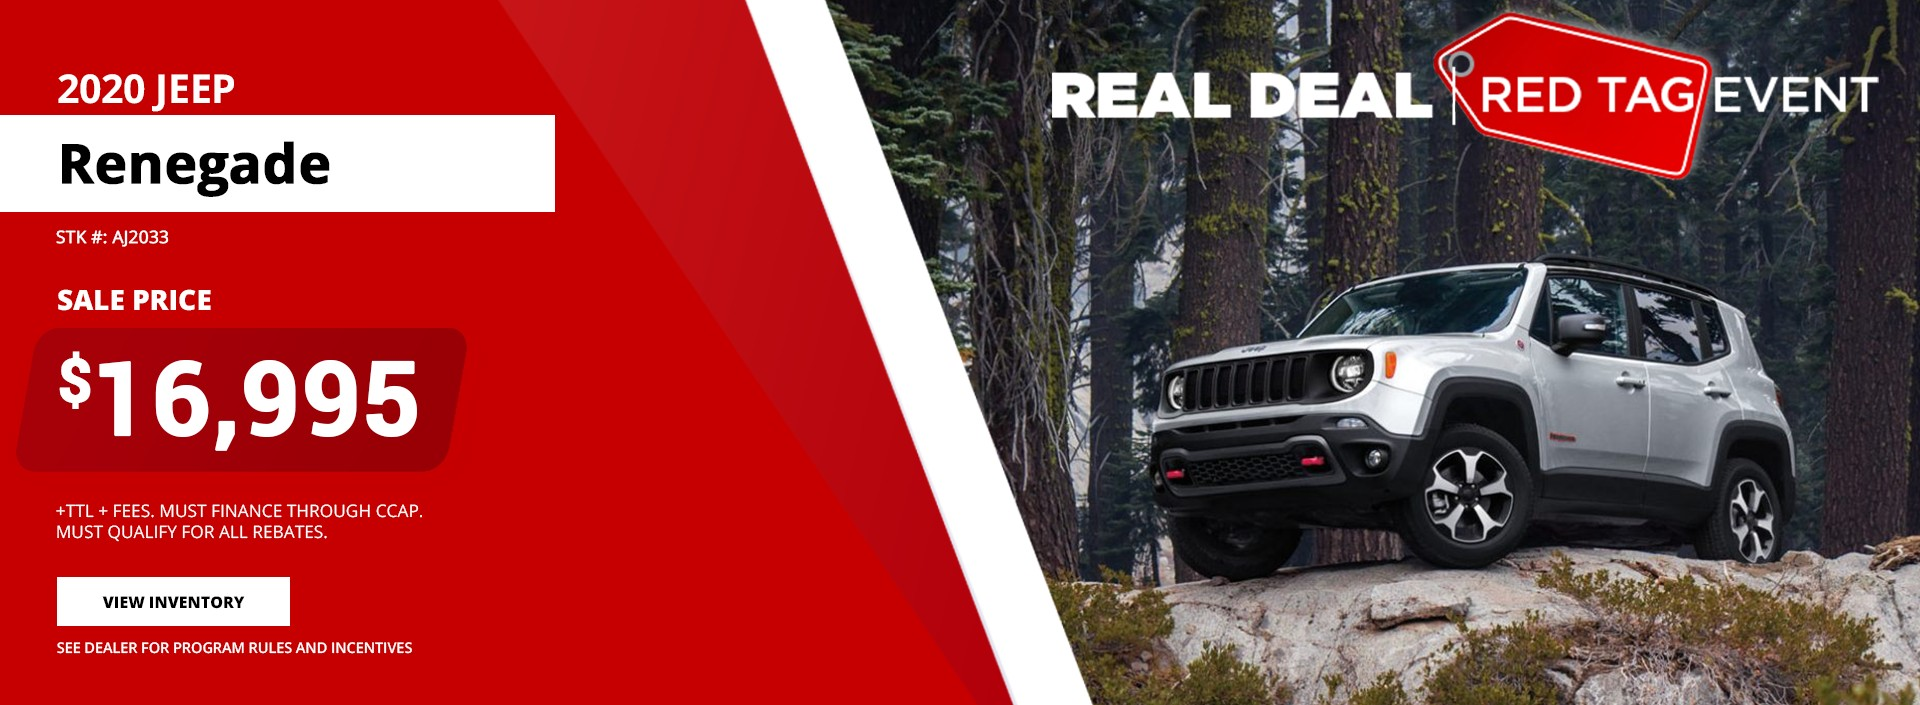 2020 Jeep Renegade - Red Tag Event